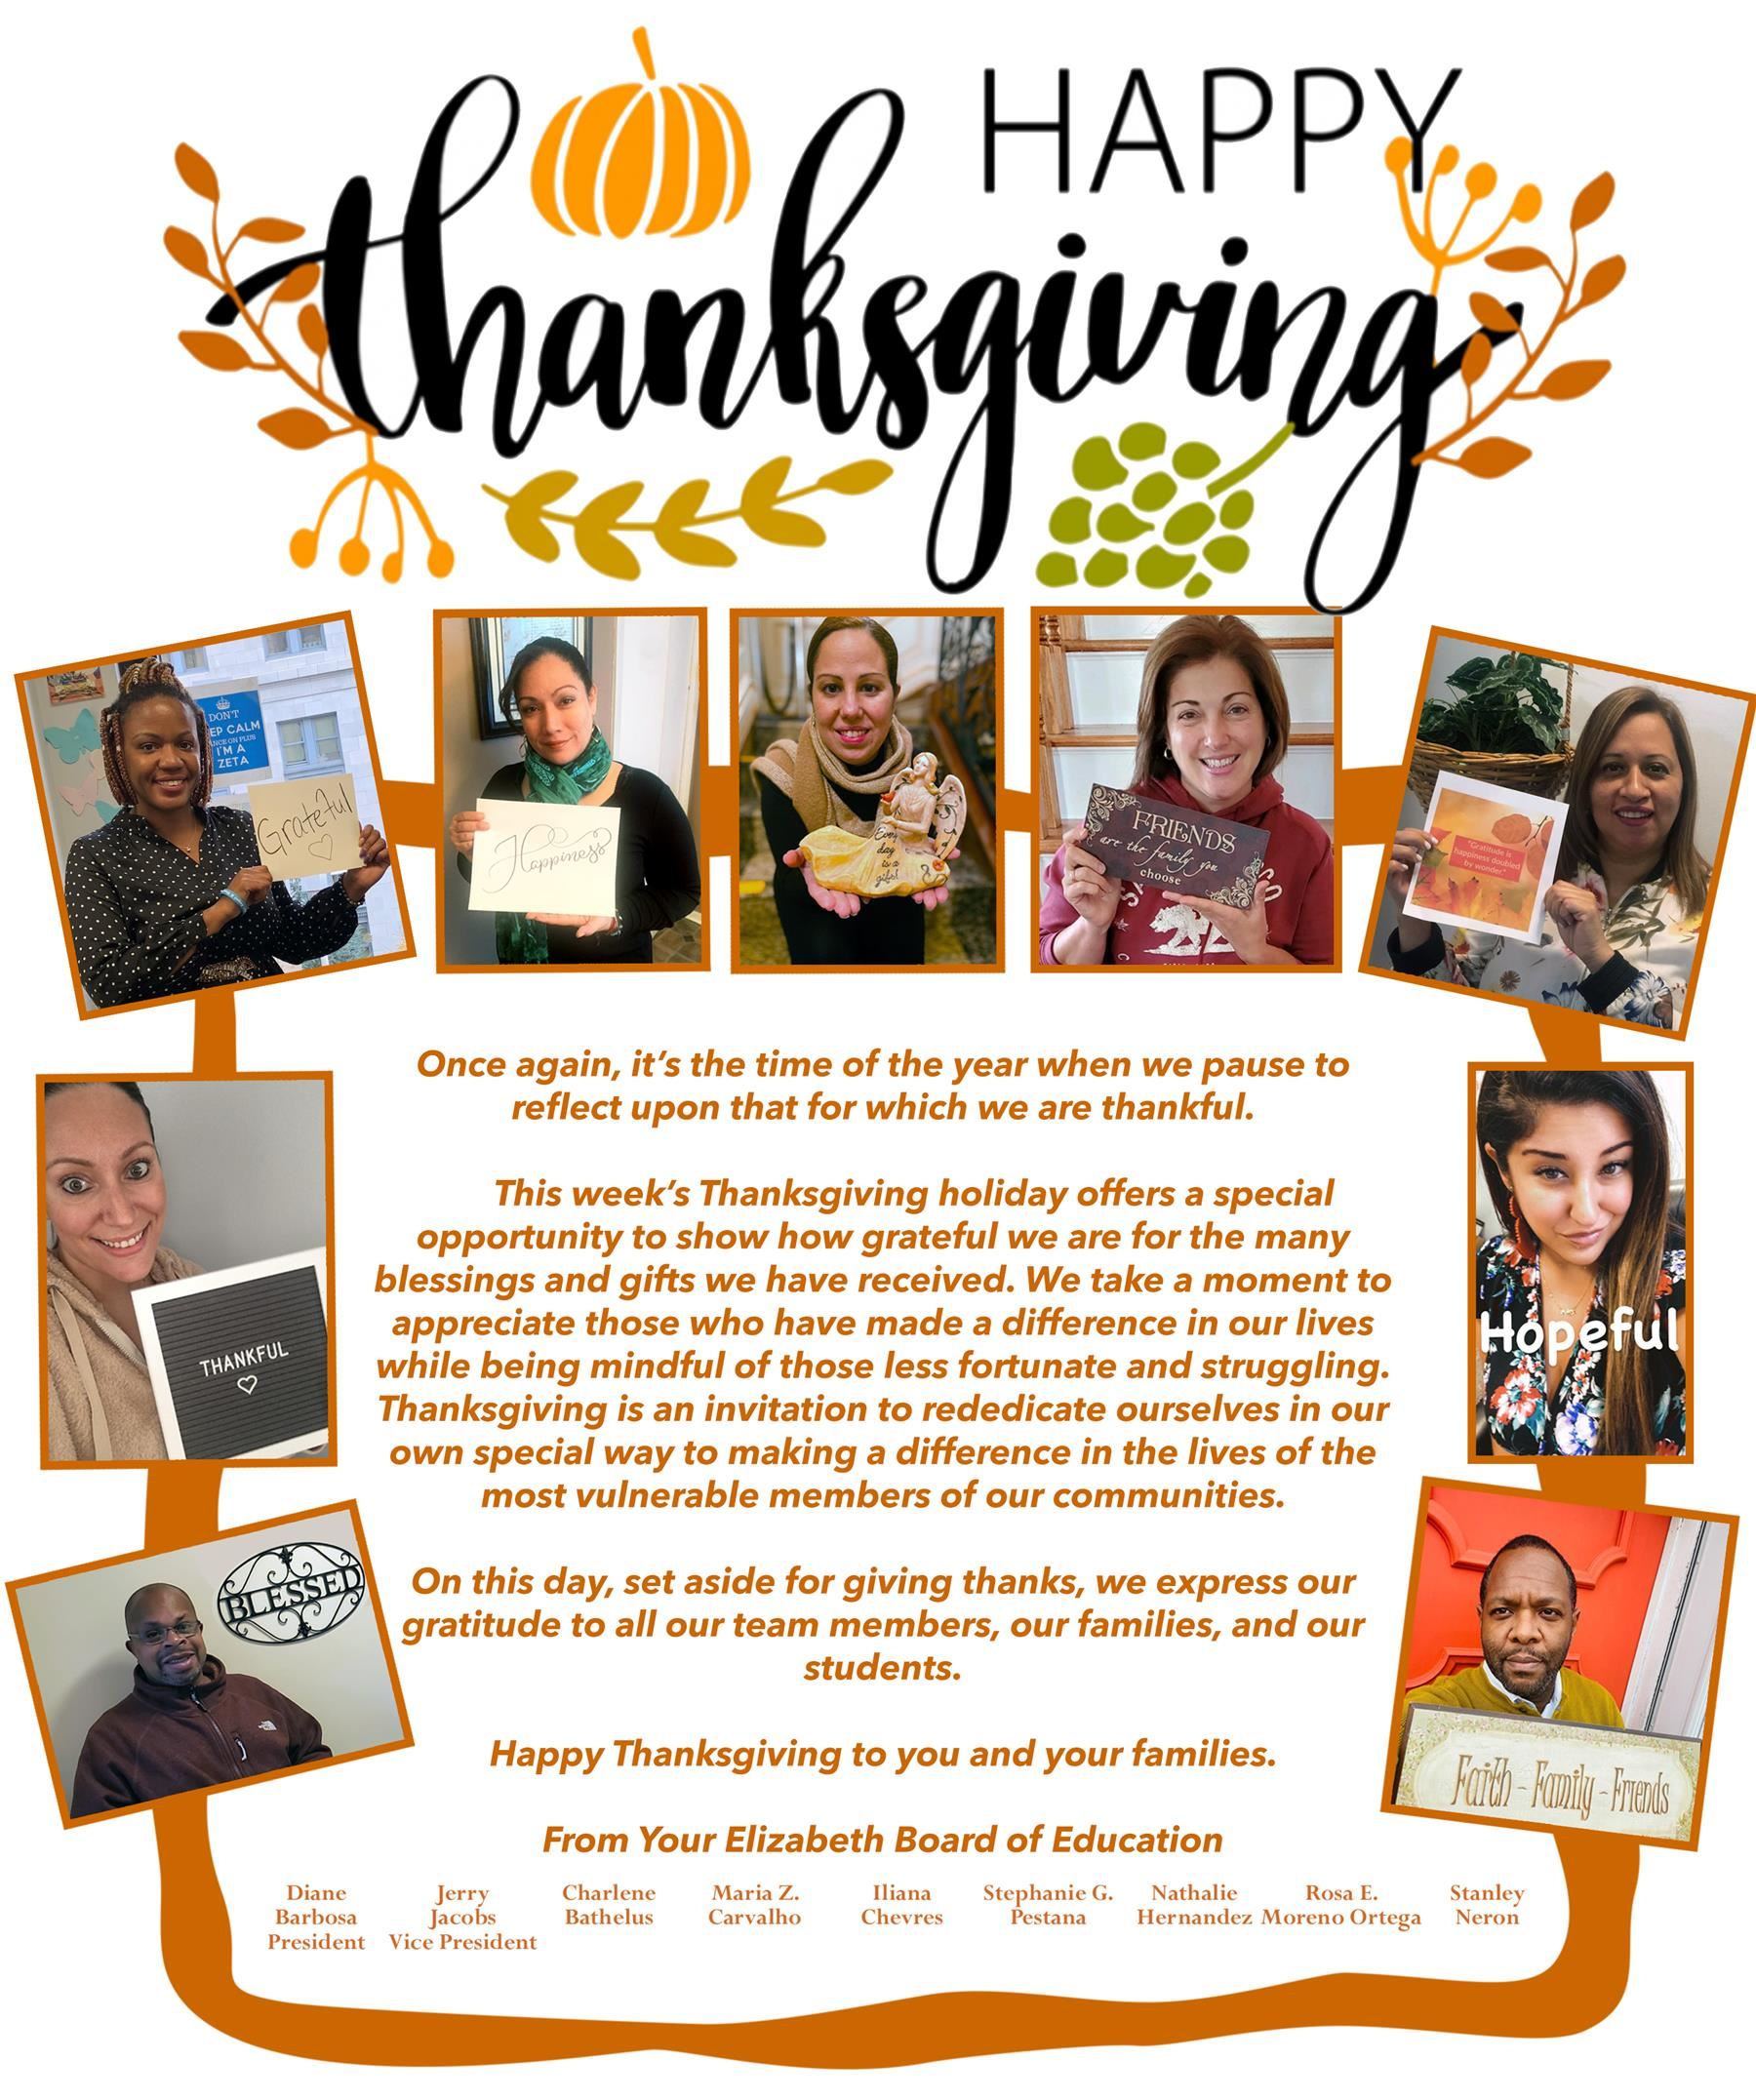 Happy Thanksgiving from Your Elizabeth Board of Education